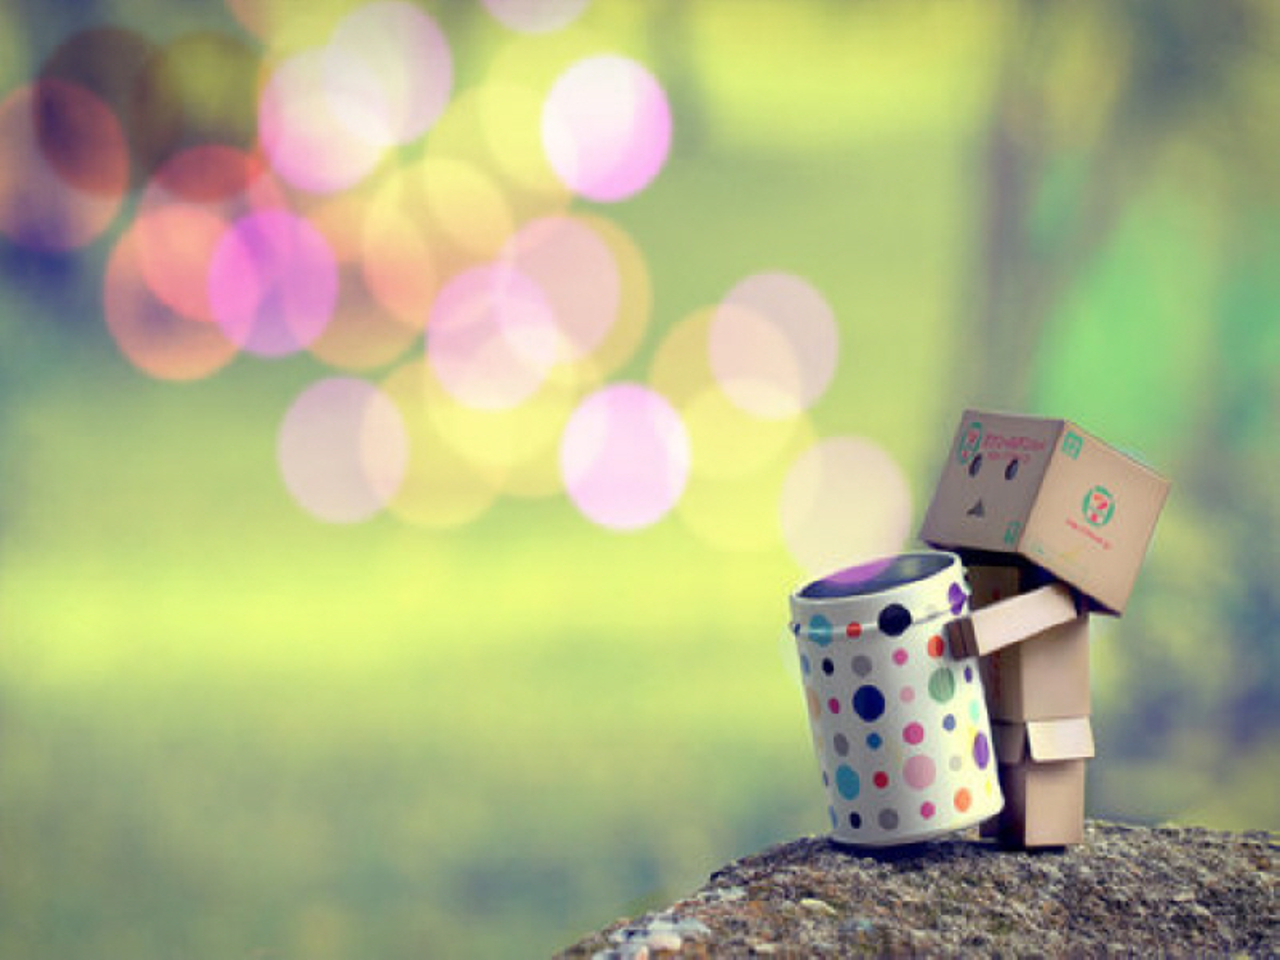 Cute Backgrounds for Phone 1280x960